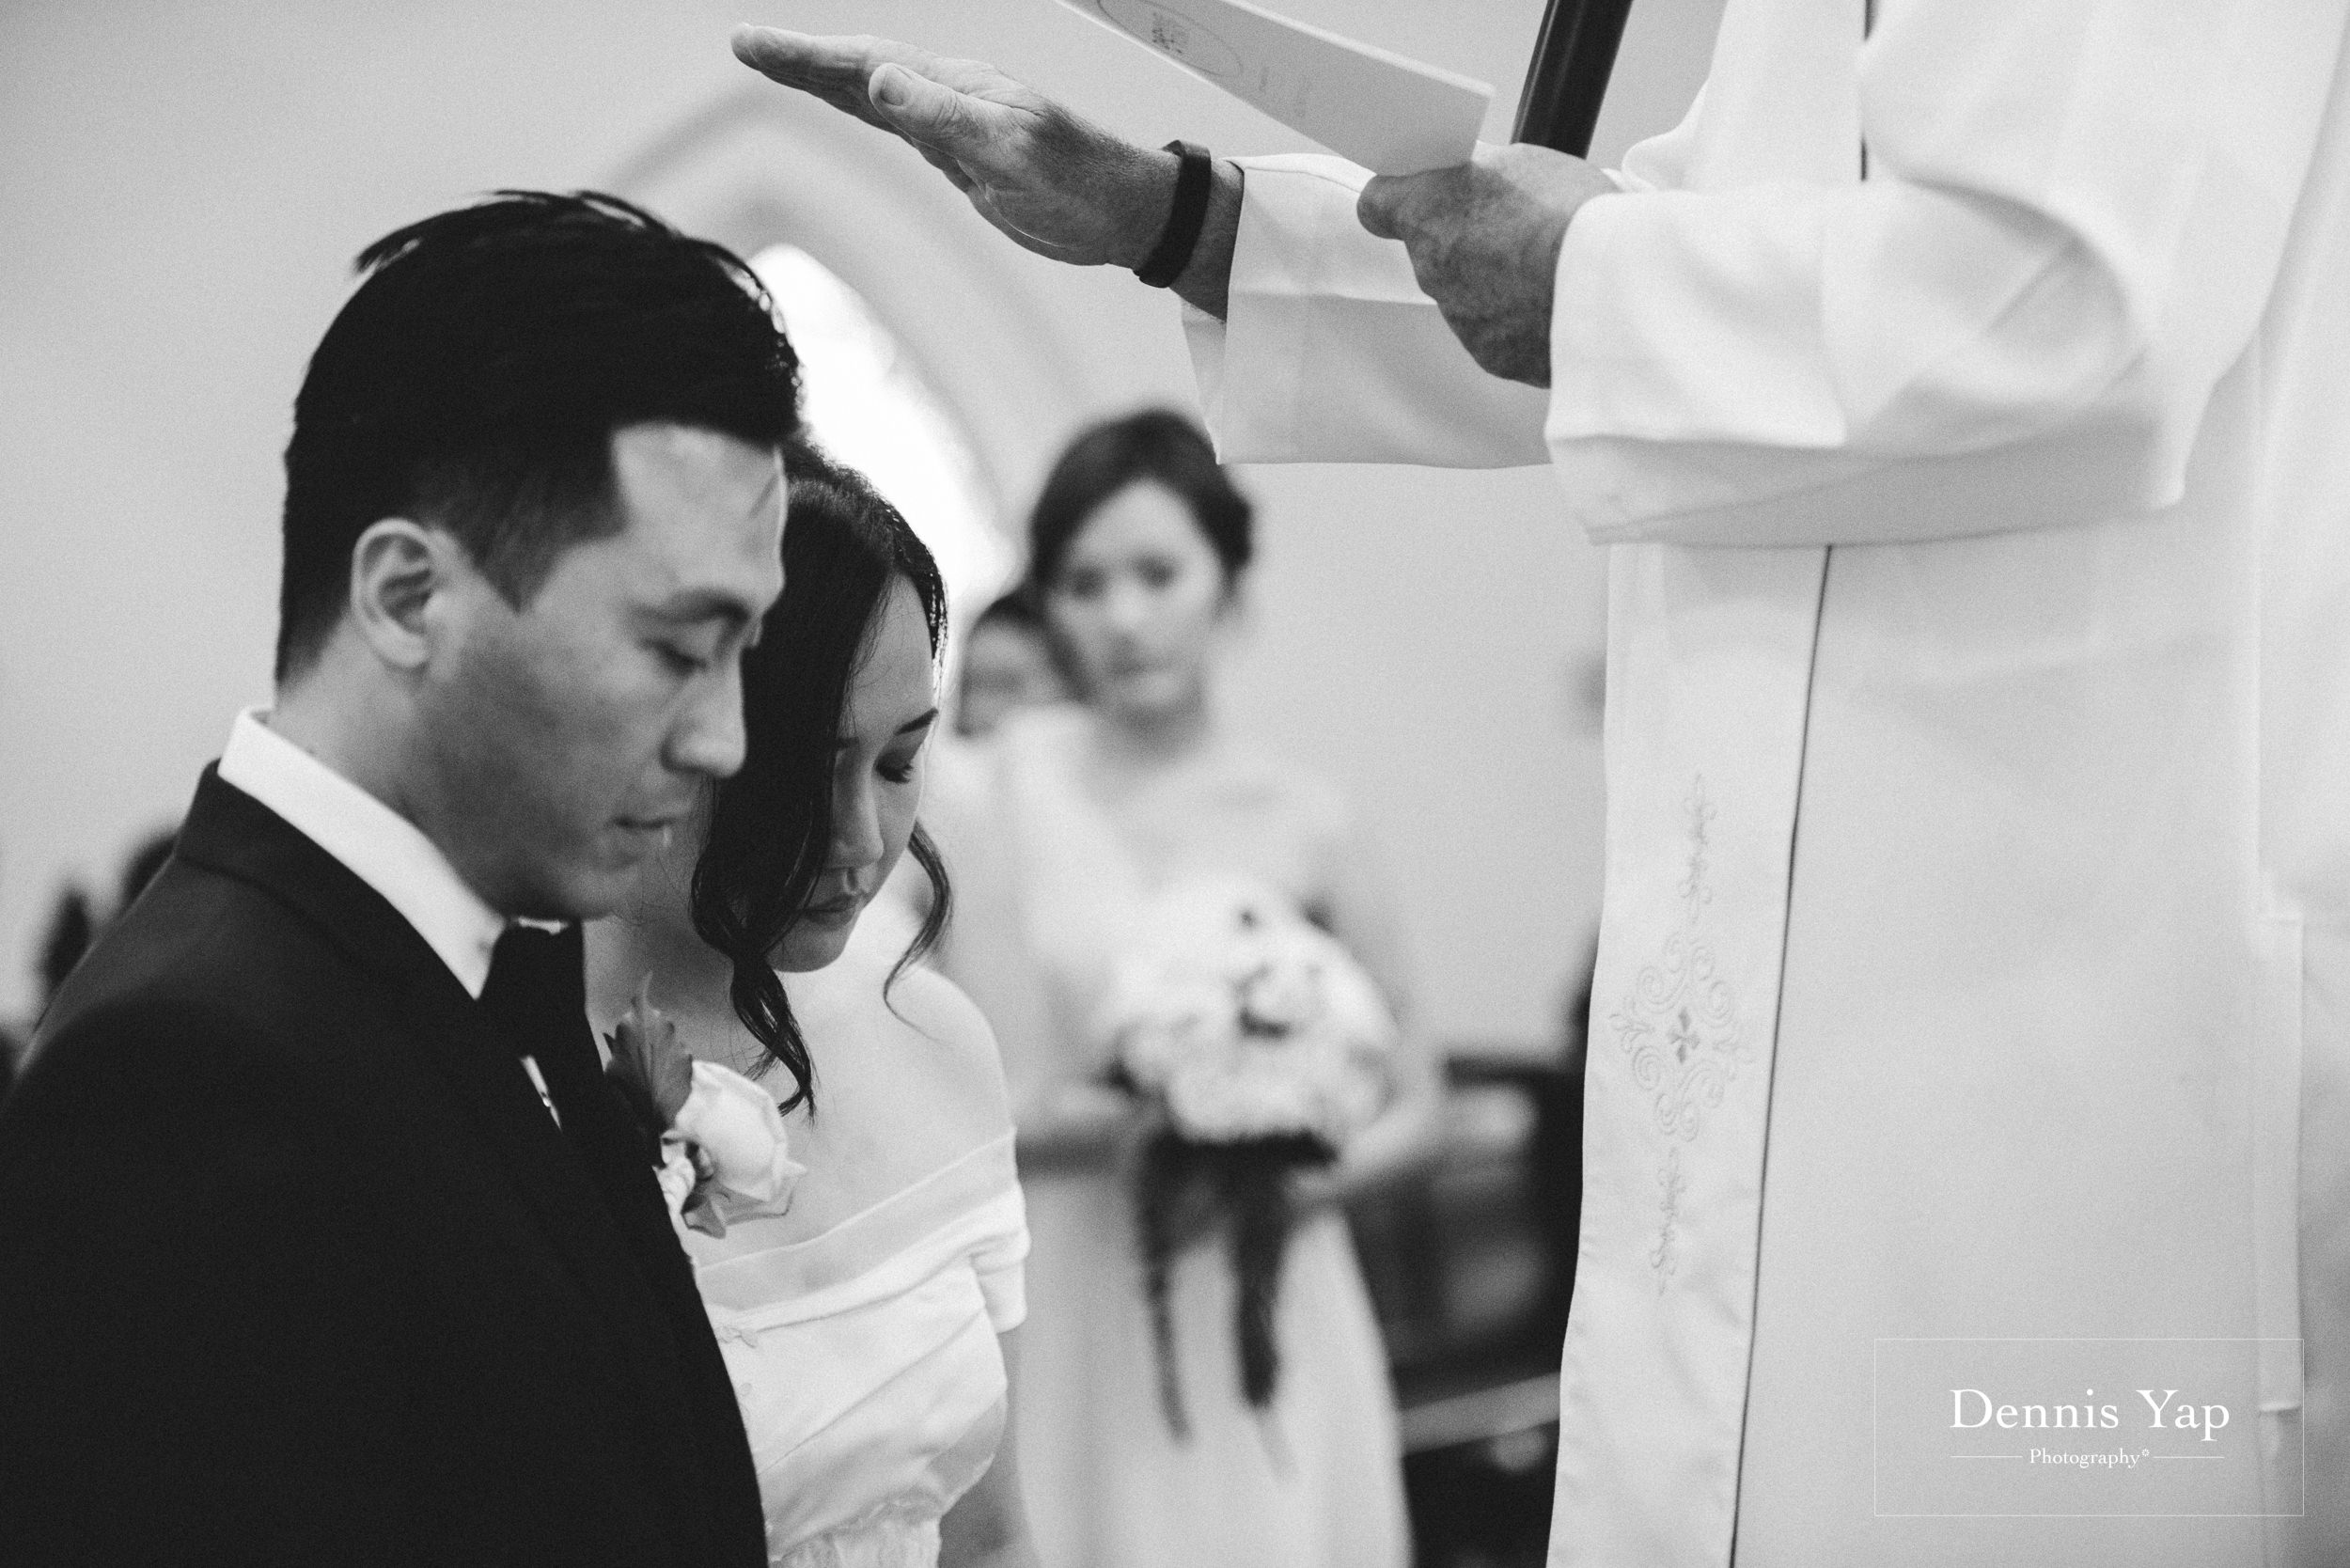 tony daphne wedding day melbourne RACV dennis yap photography malaysia top photographer beloved real moments-35.jpg